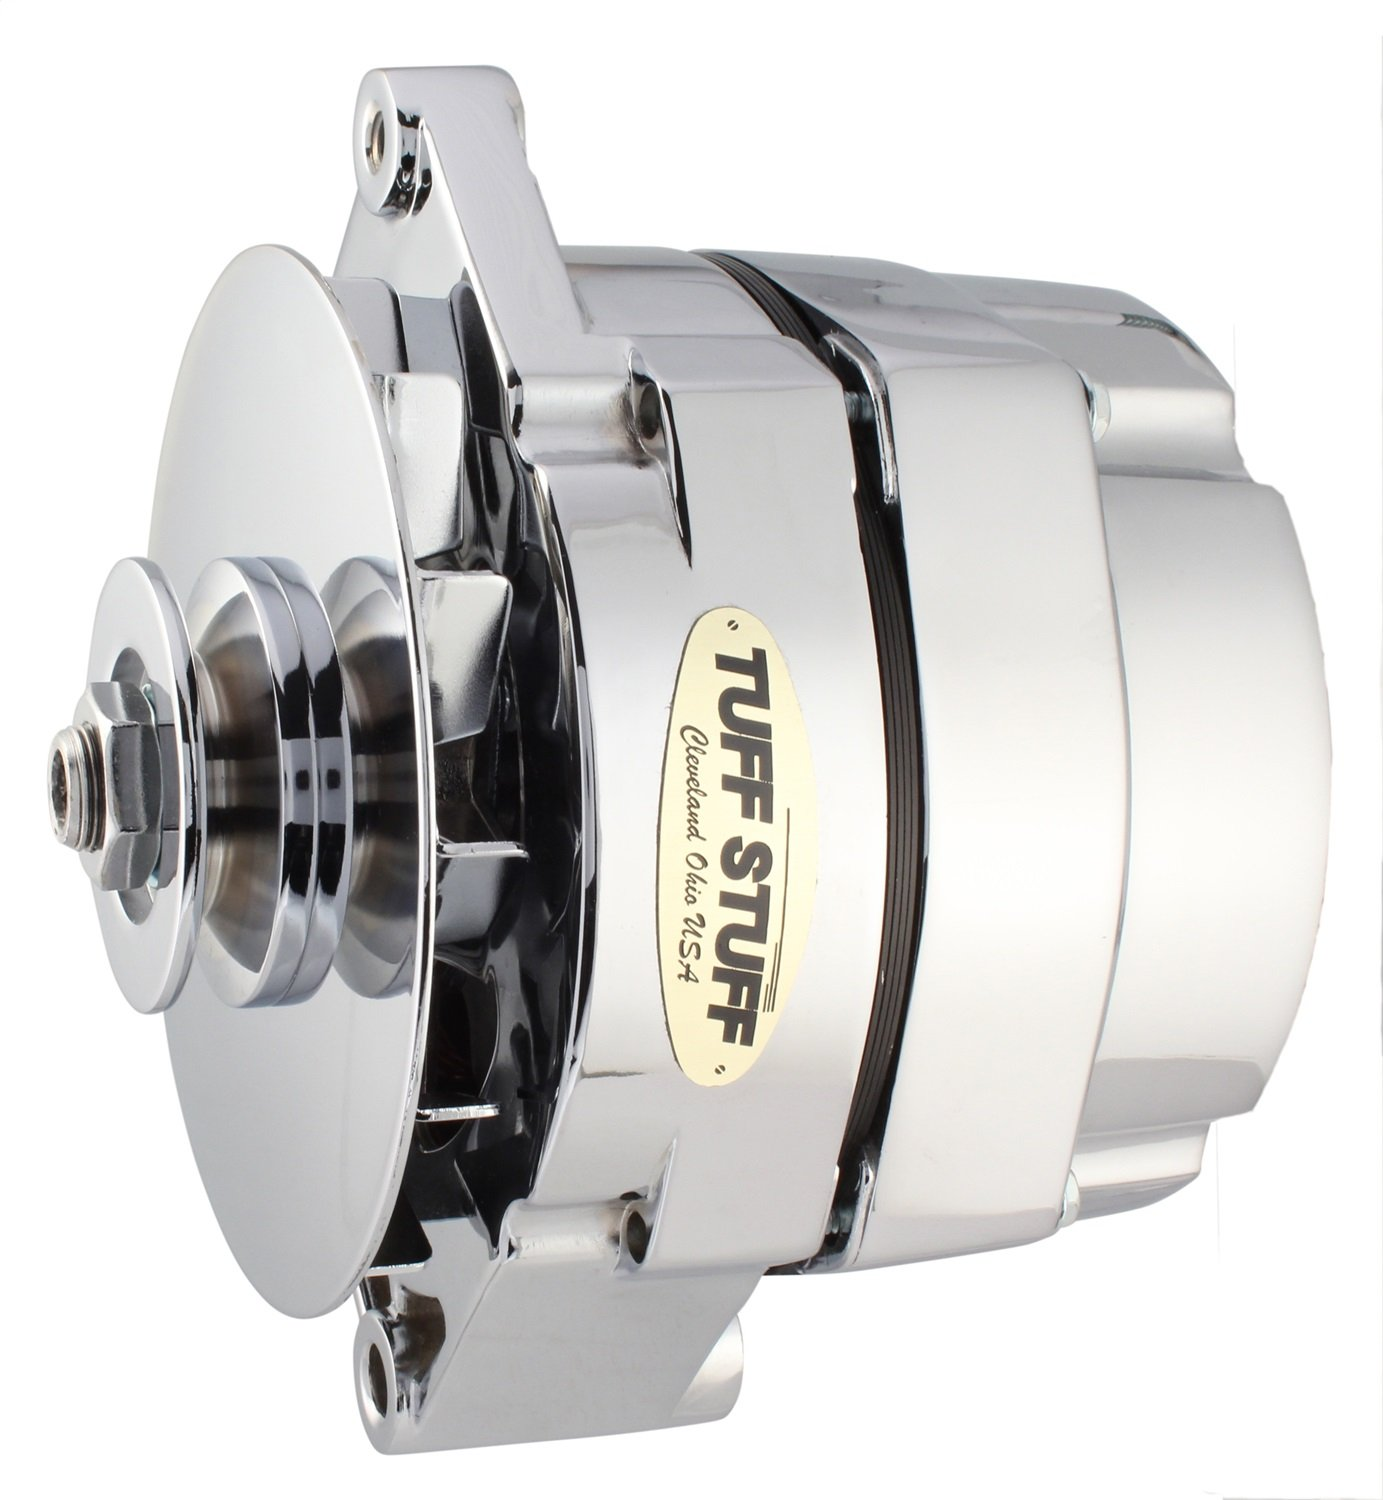 Amazon.com: Tuff Stuff 7127ND Chrome 100 Amp 1-Wire Alternator for ...